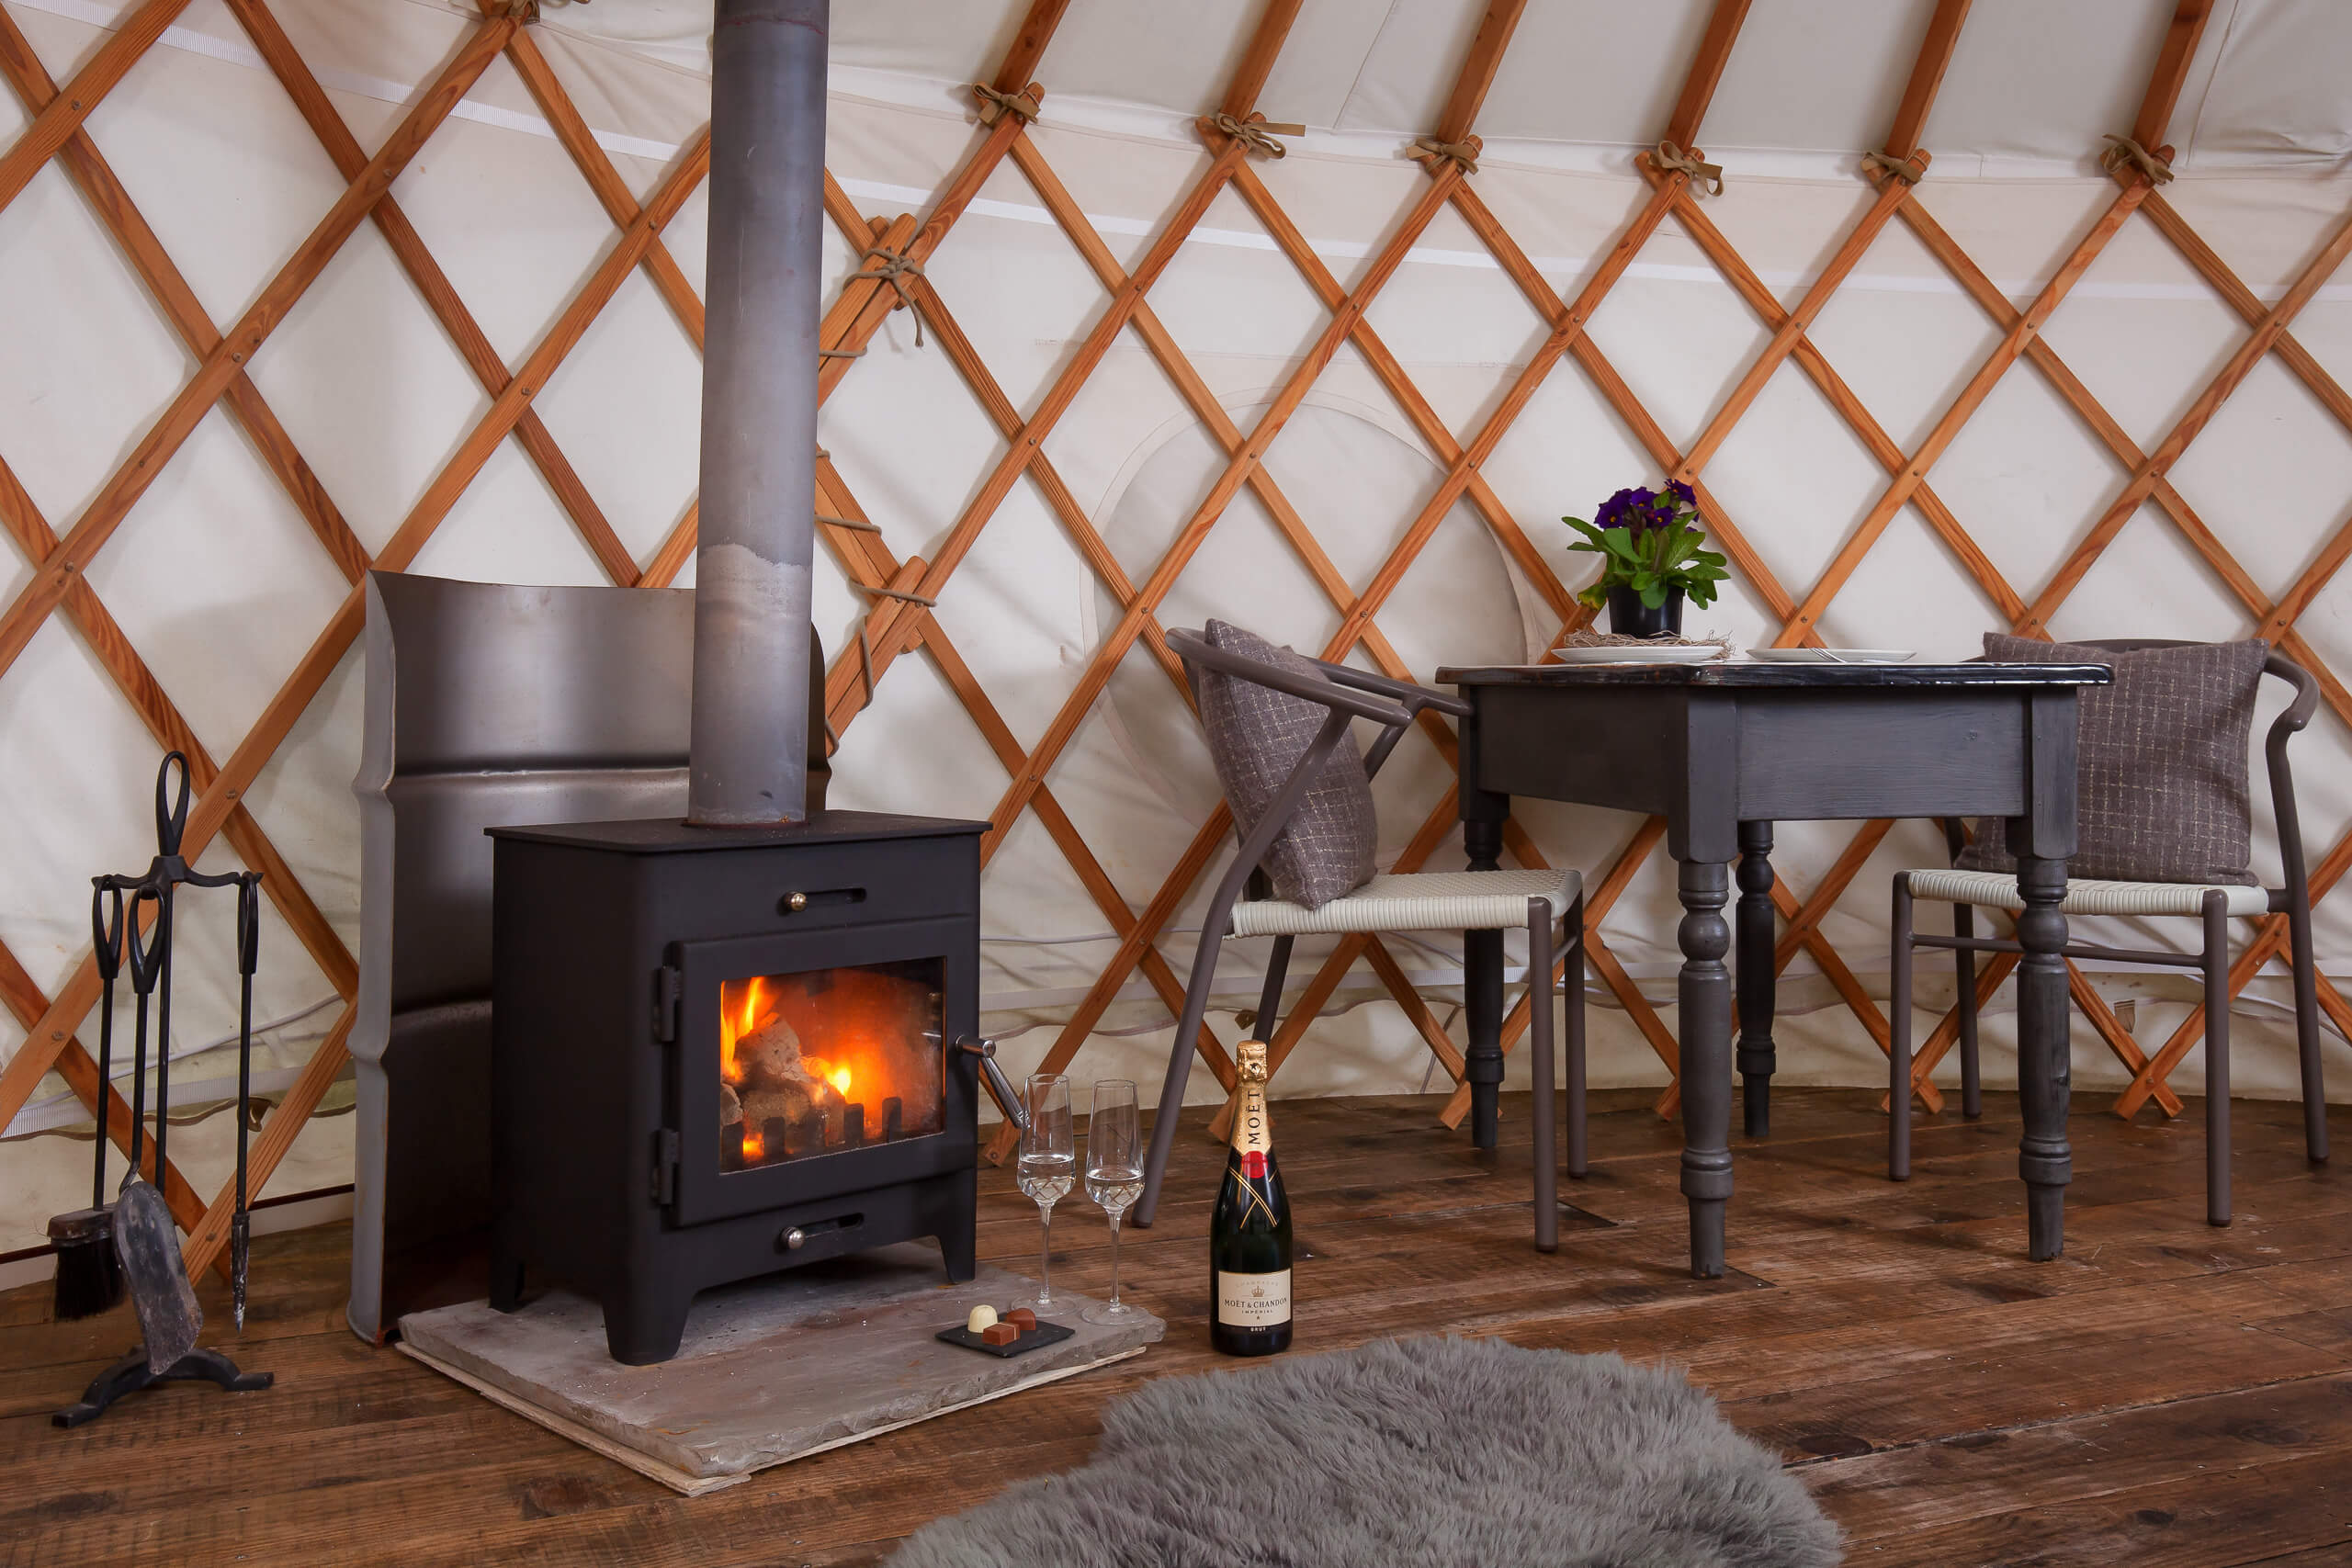 Yurt interior, glamping, The Yurt Retreat, champagne by the fire, Holidays Uk